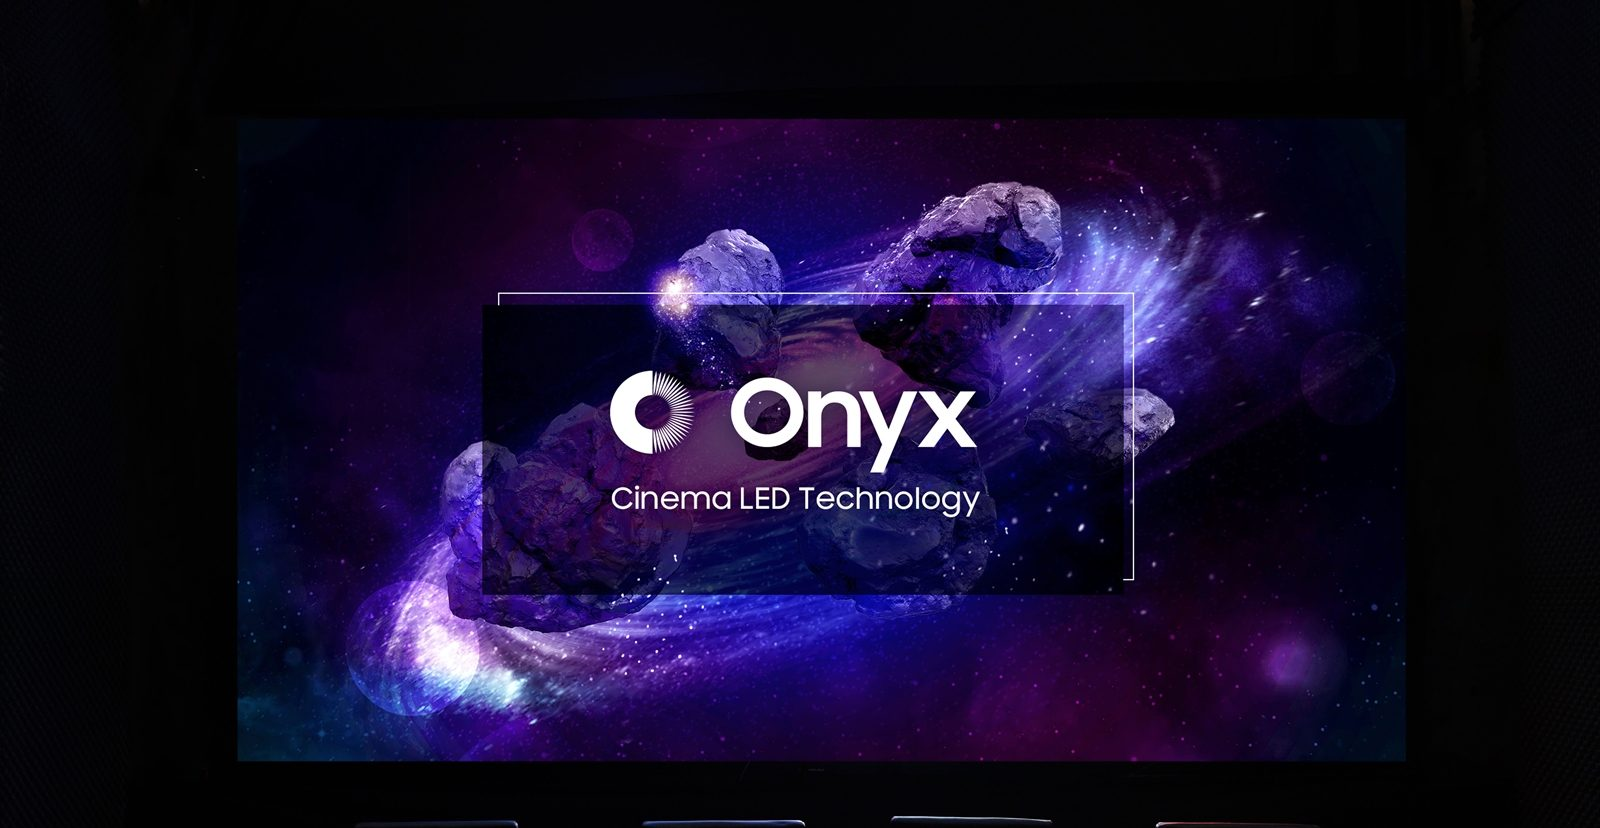 Samsung Enhances the Moviegoing Experience with Largest-Ever Onyx Cinema LED Screen Installation in the U.S.